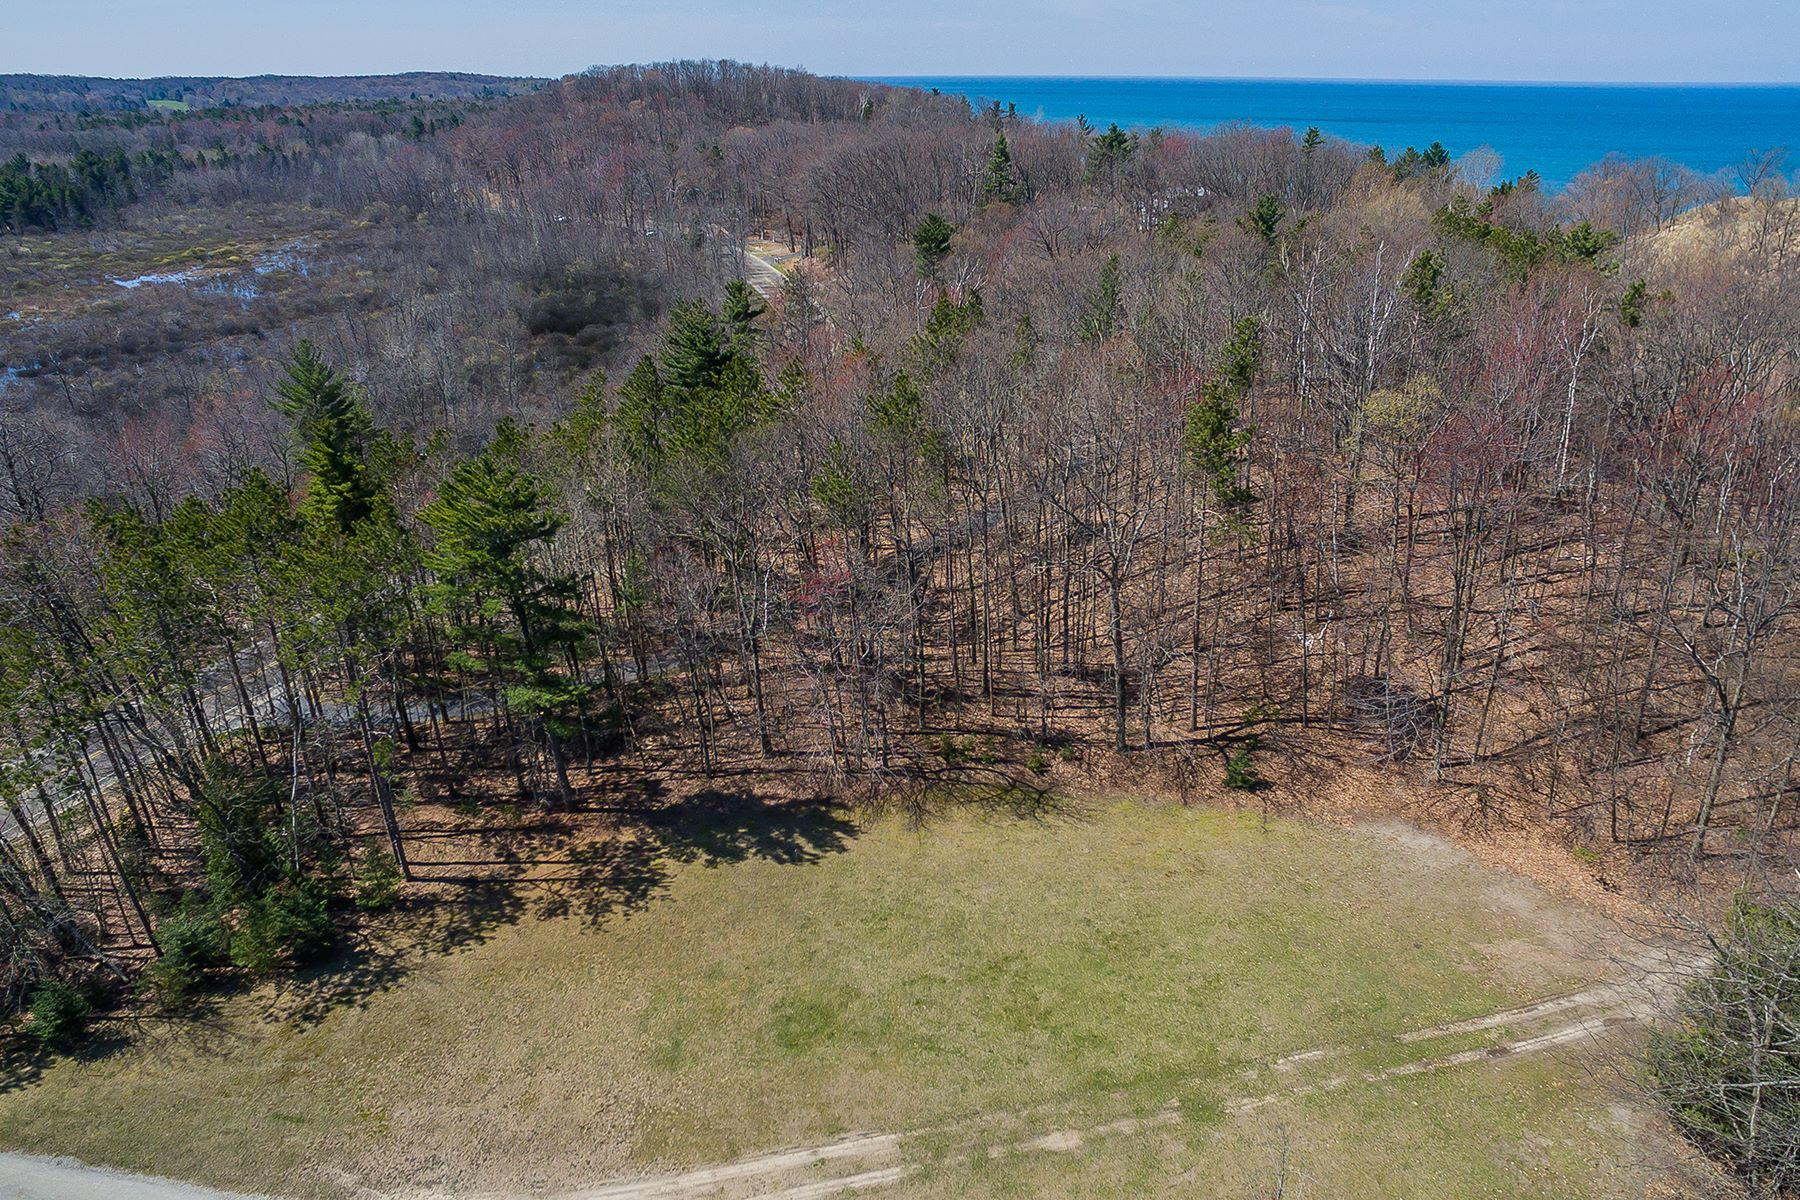 Land for Sale at Serene Lakeshore Property 4500 Lakeshore Road Lot 6 Manistee, Michigan 49660 United States